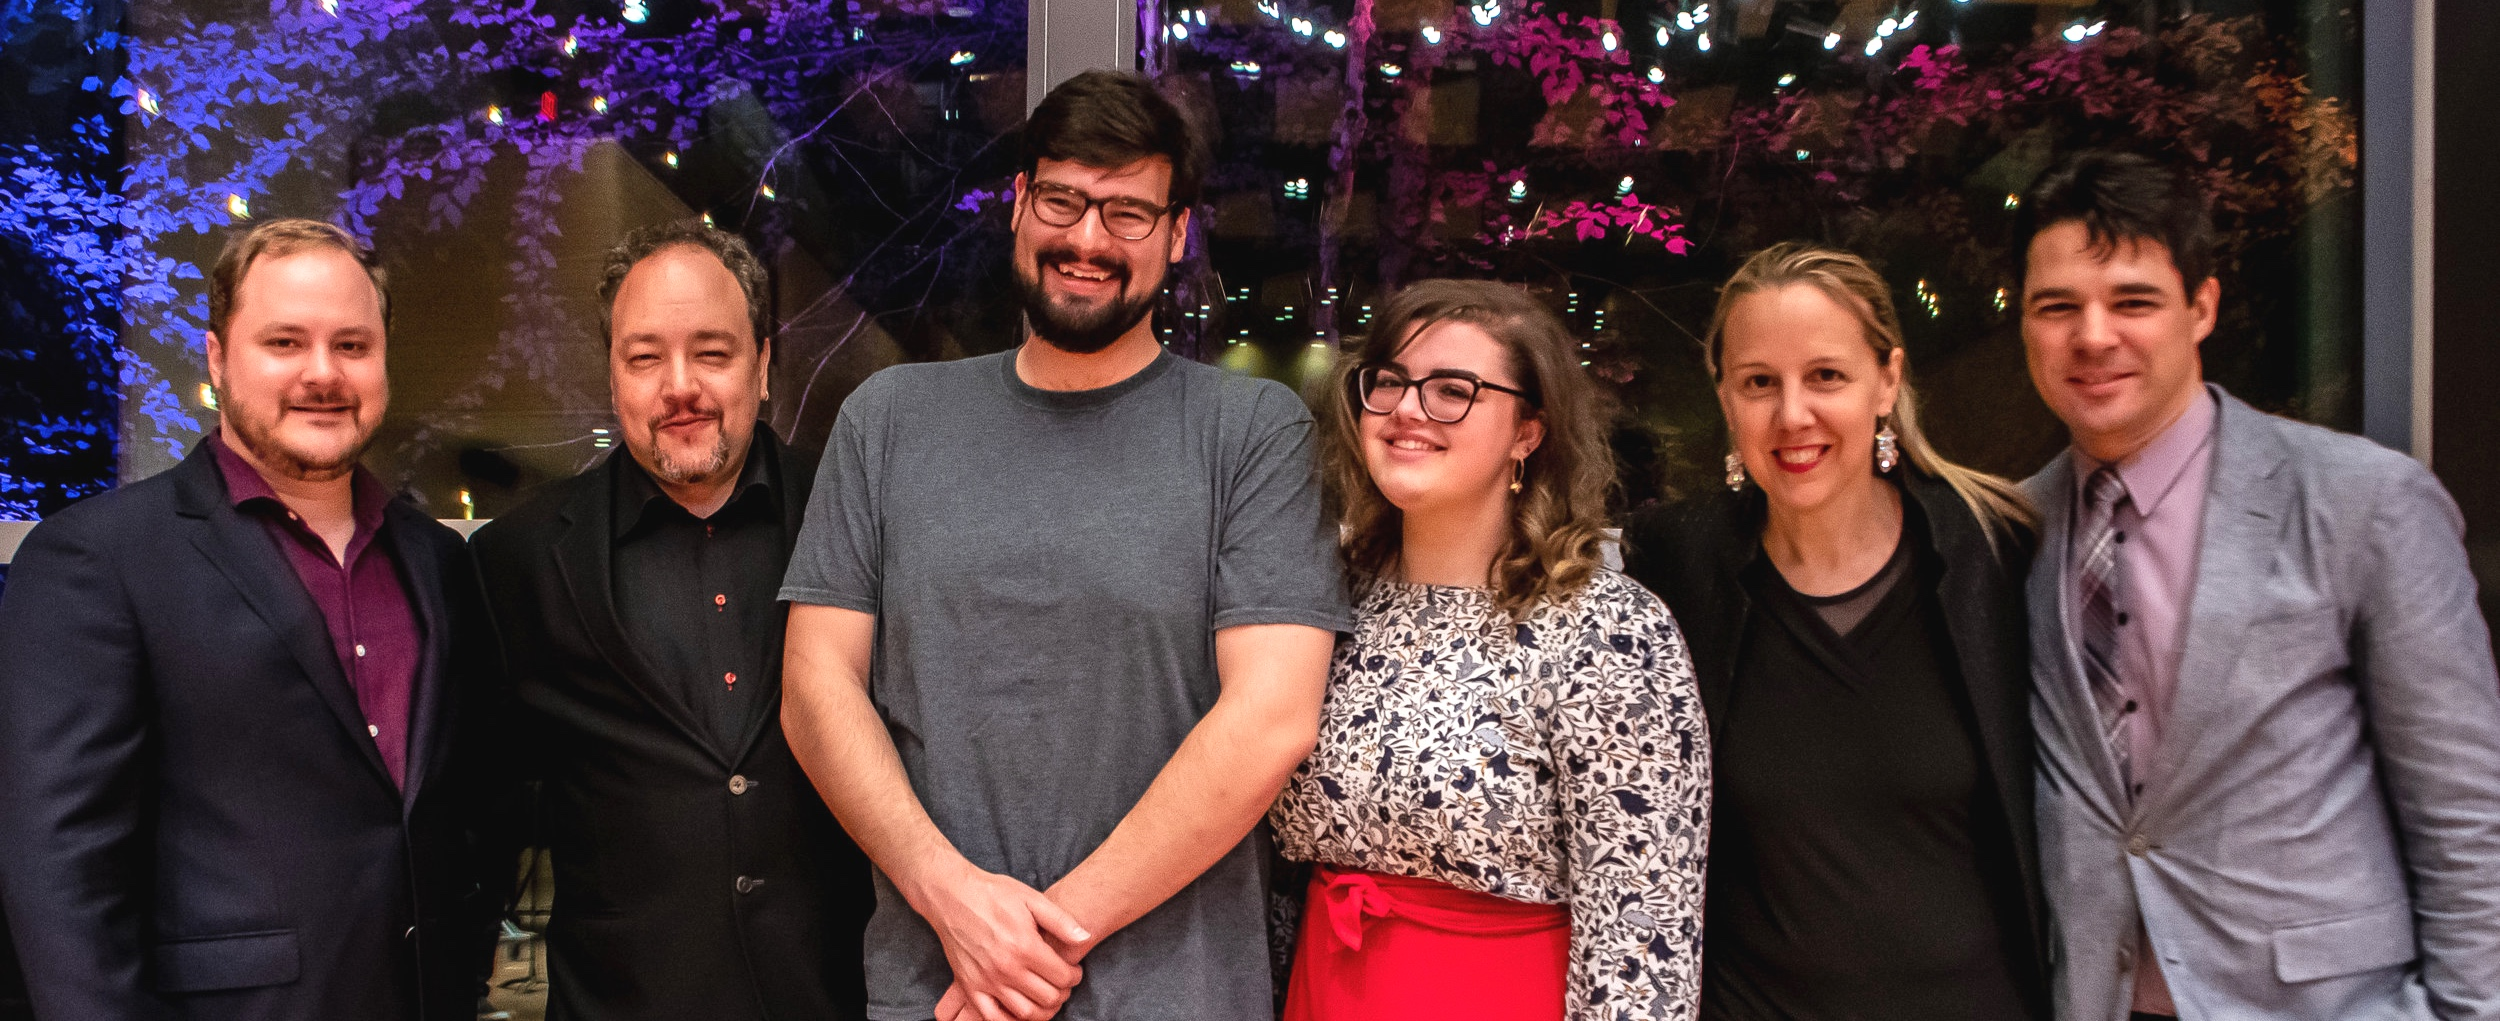 From left to right:  Stephen Cabell  ( Composition Faculty/Coordinator ),  Robert Paterson  ( Composition FacultyArtistic Director ),  John McKeever  ( Conductor/Resident Advisor ),  Grace Law  ( Artistic Administration ),  Victoria Paterson  ( Violinist/Executive Director ), and  Sebastian Danila  ( Librarian )